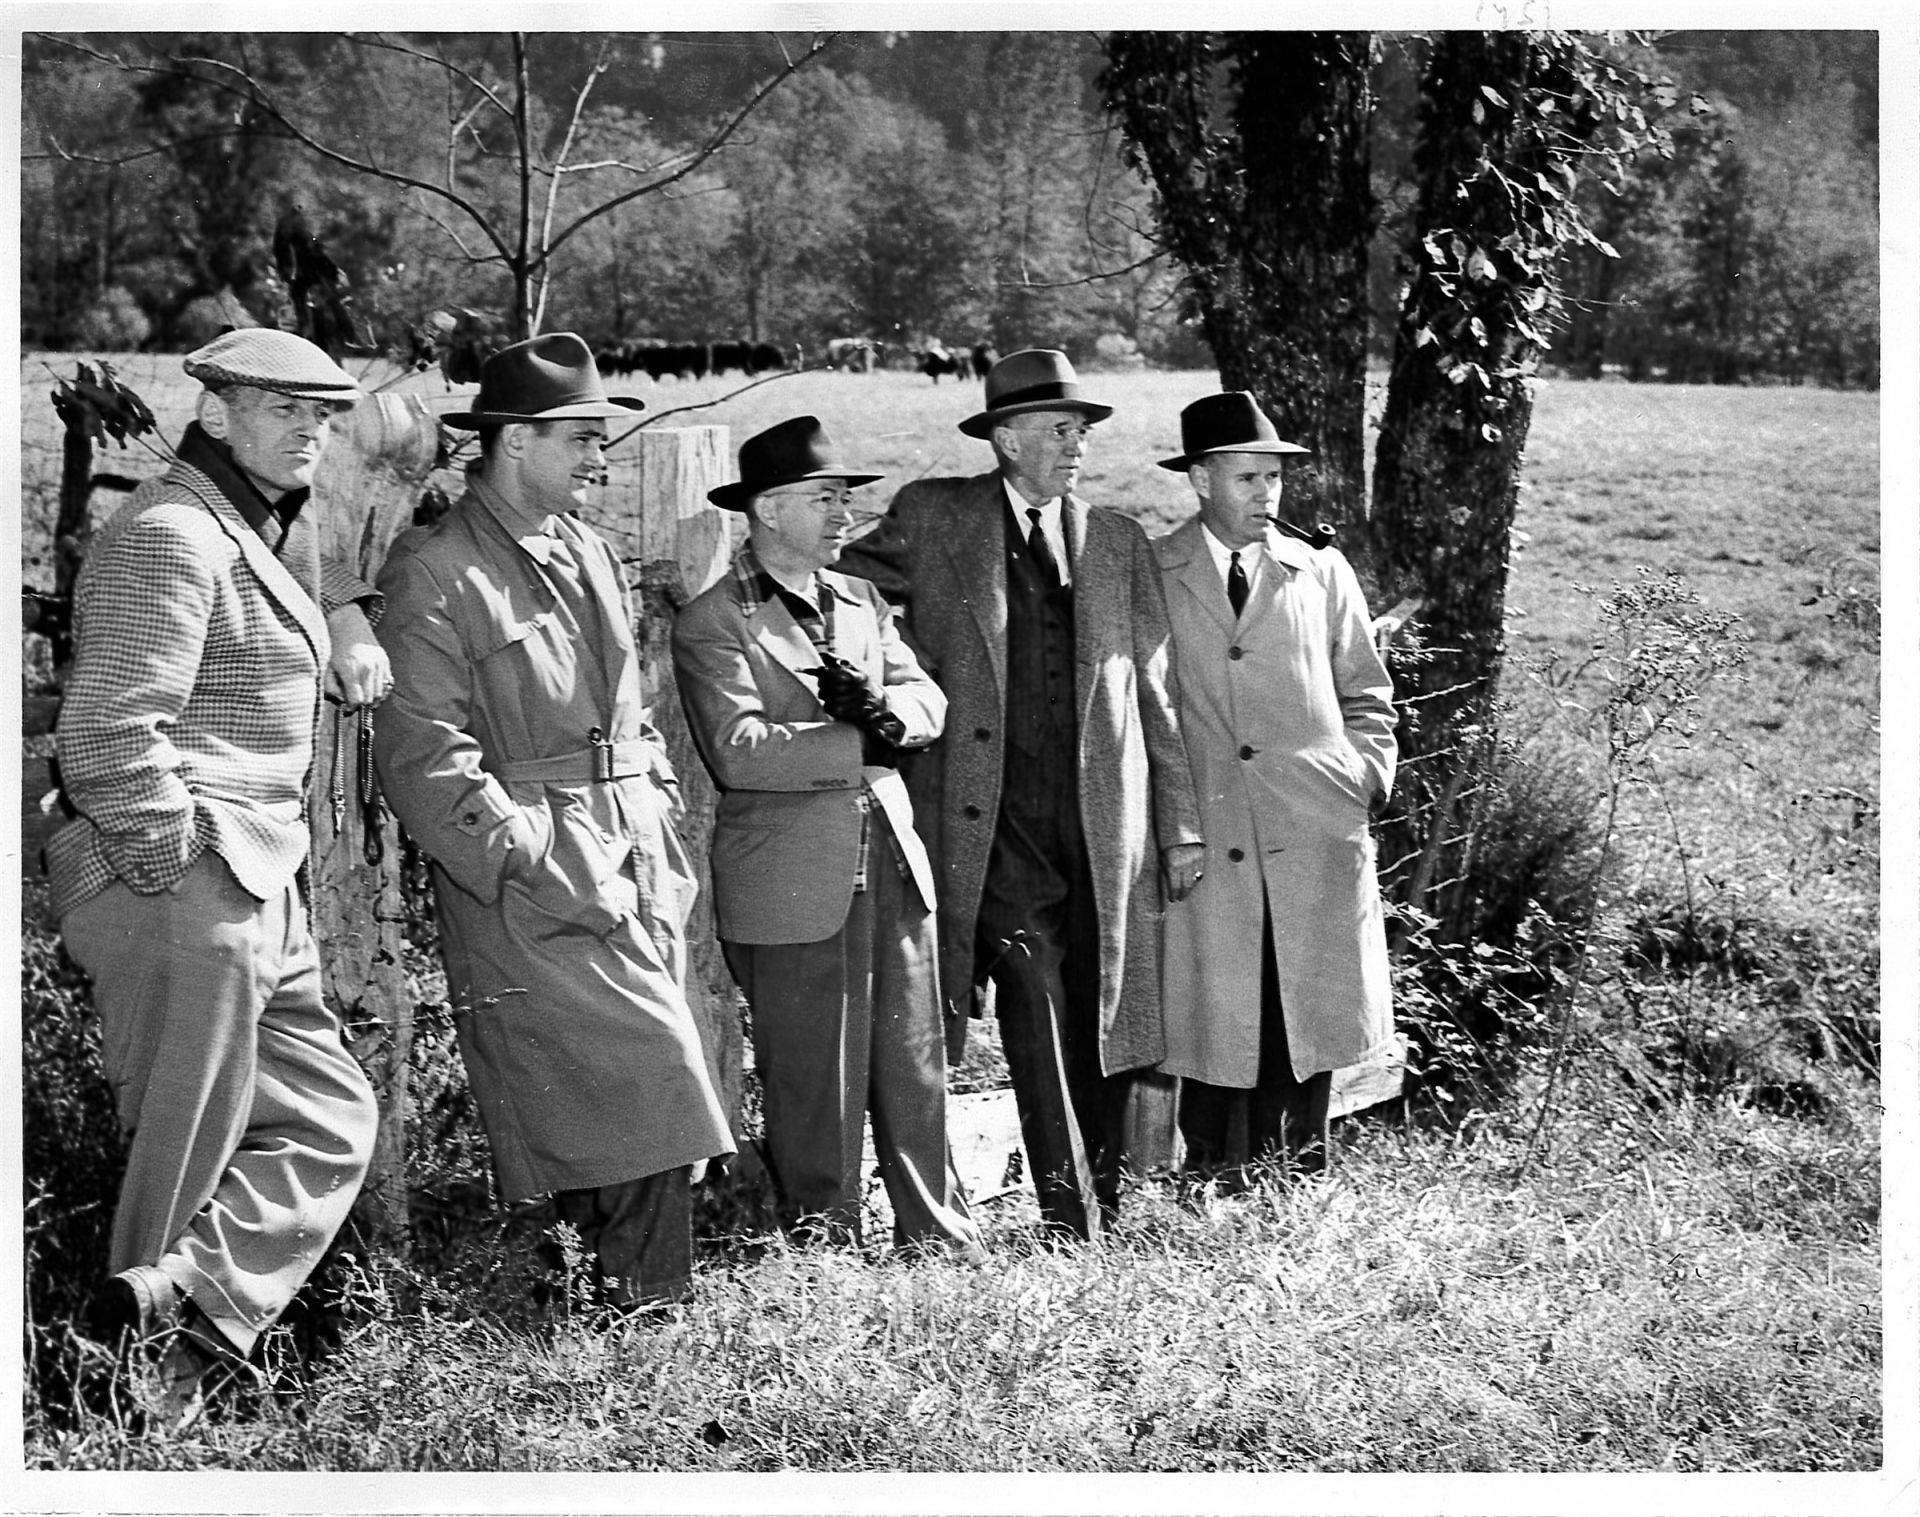 Carl Rust Parker (second from right), a partner with the famed Olmsted Brothers landscape architecture firm, visited in 1950–51 to sketch out the site plan for the campus. The Olmsted Brothers were sons of landscape architect Frederick Law Olmsted, designer of Central Park.